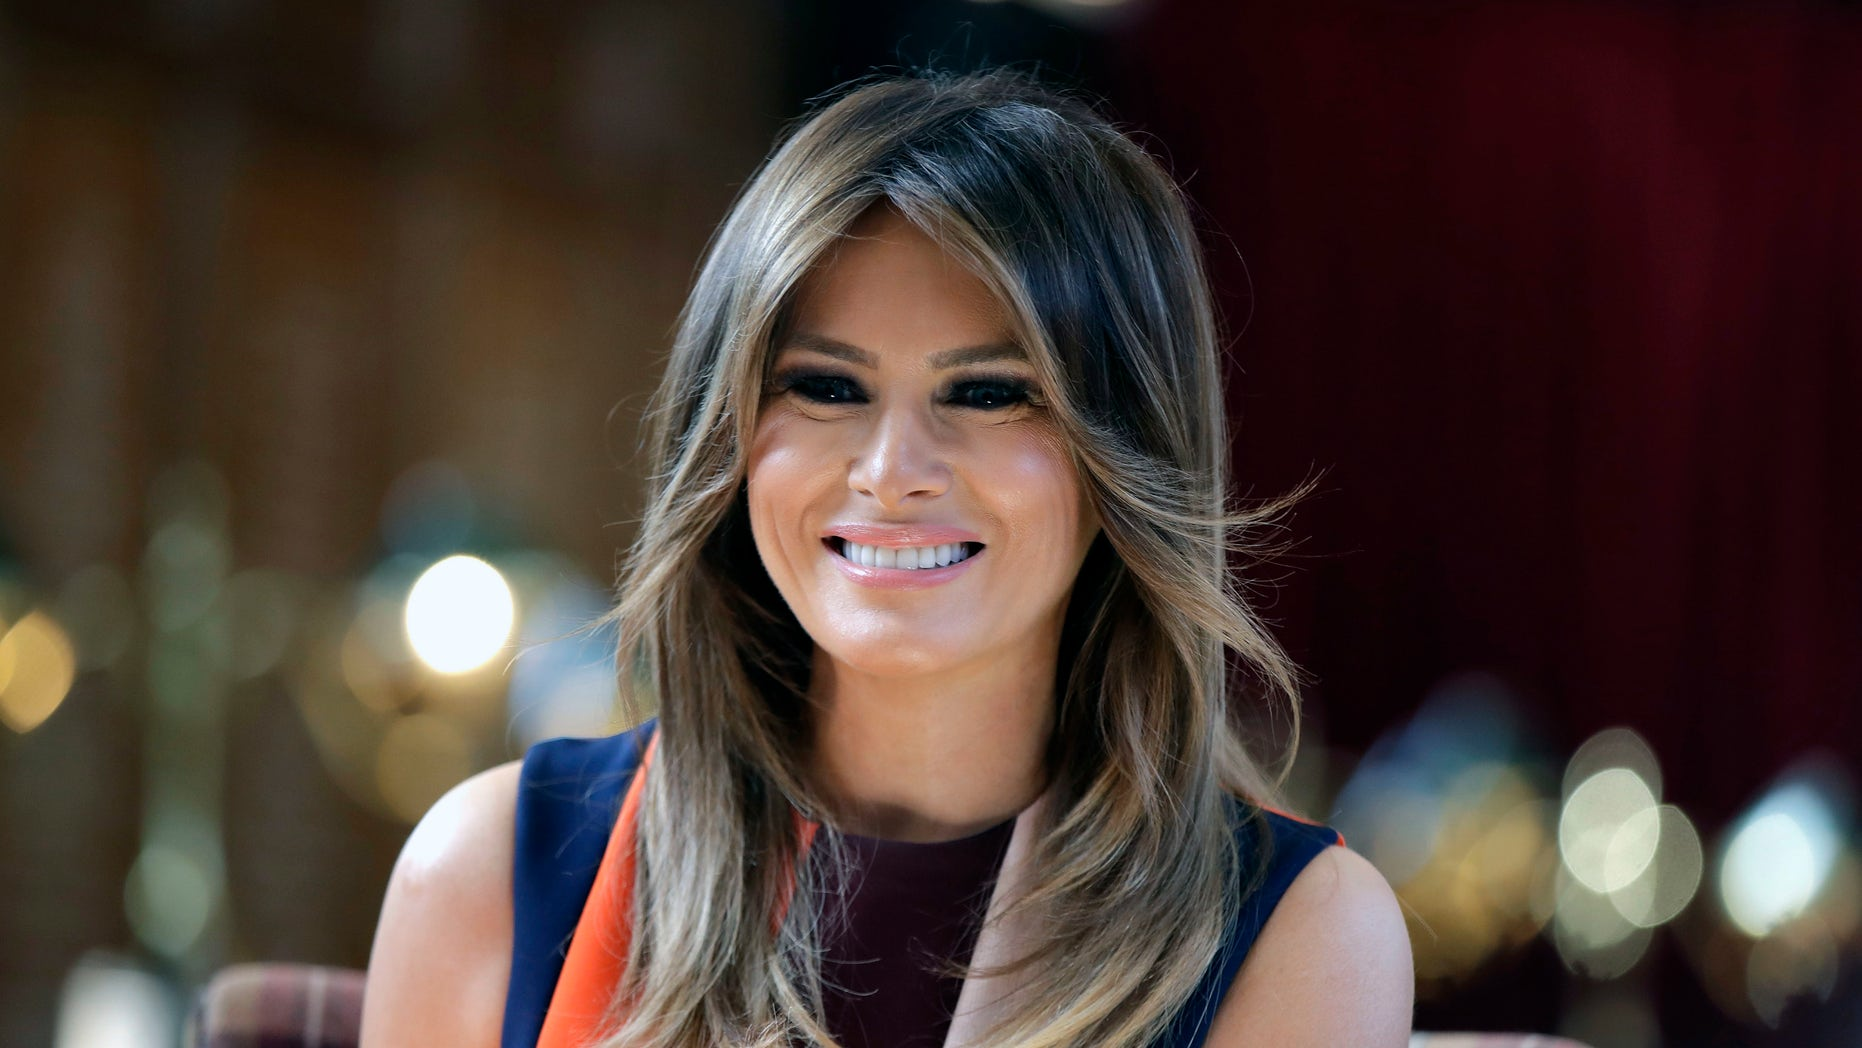 Melania Trump Visits Newborn Victims of Opioid Crisis Following Plane Malfunction